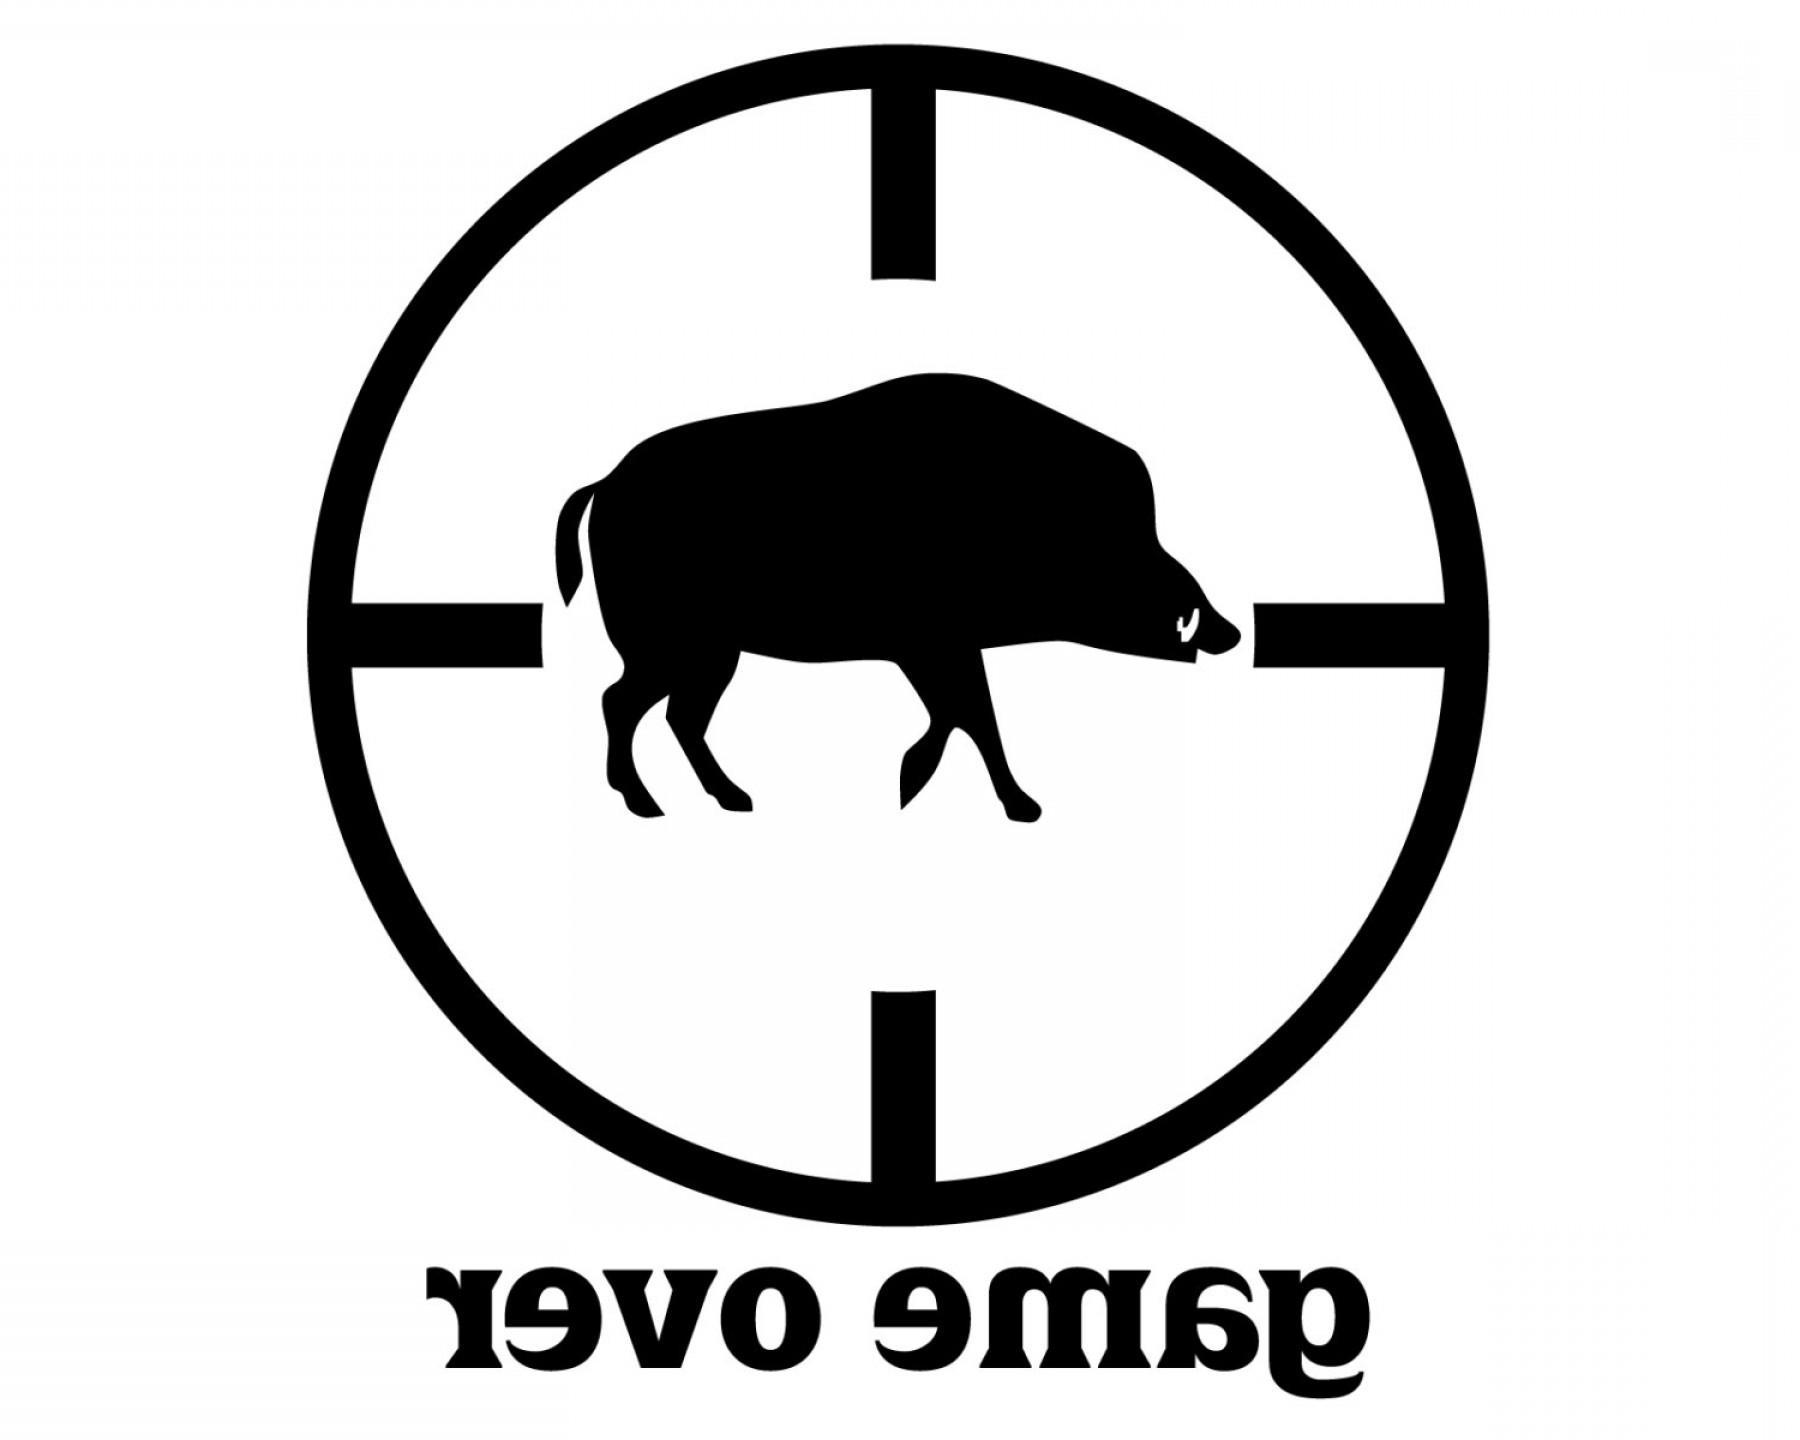 clipart library library Wild hunter decal soidergi. Boar vector hog hunting